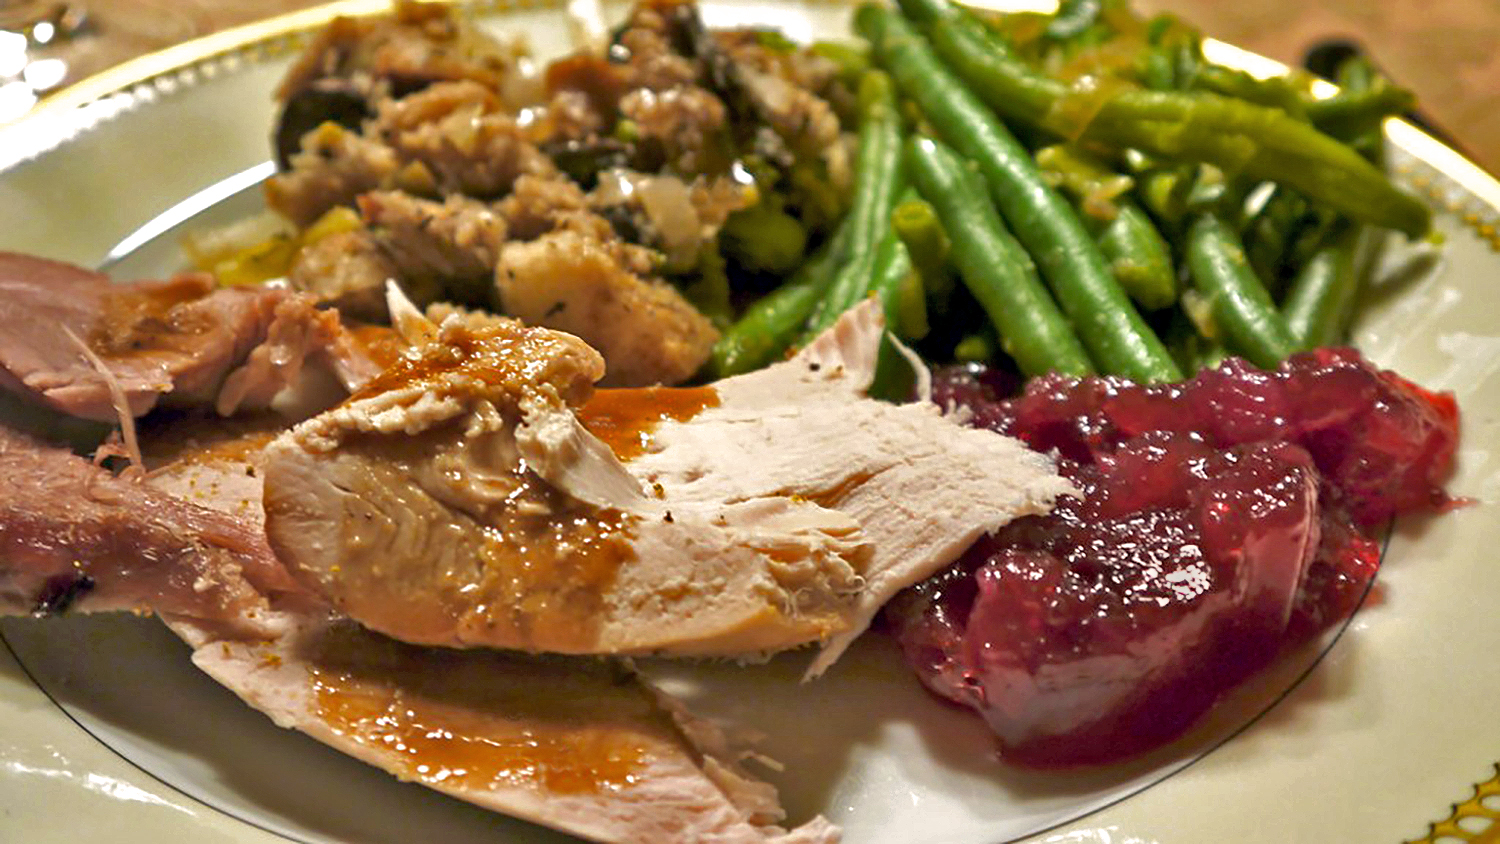 A plate of Thanksgiving leftovers